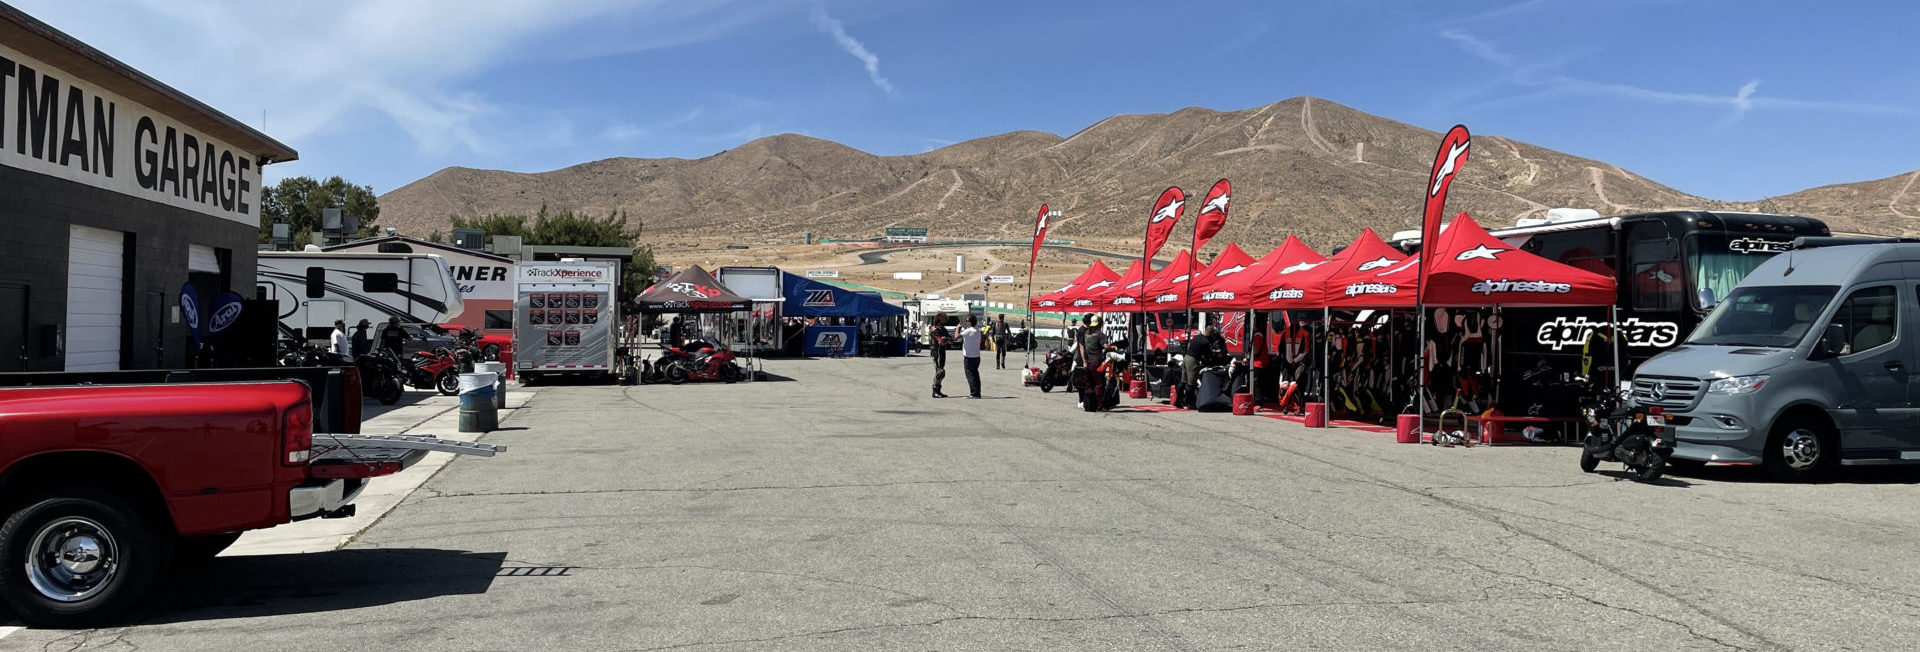 The paddock at Willow Springs International Raceway filled with MotoAmerica staff, racers, partners, and invited guests. Photo courtesy MotoAmerica.